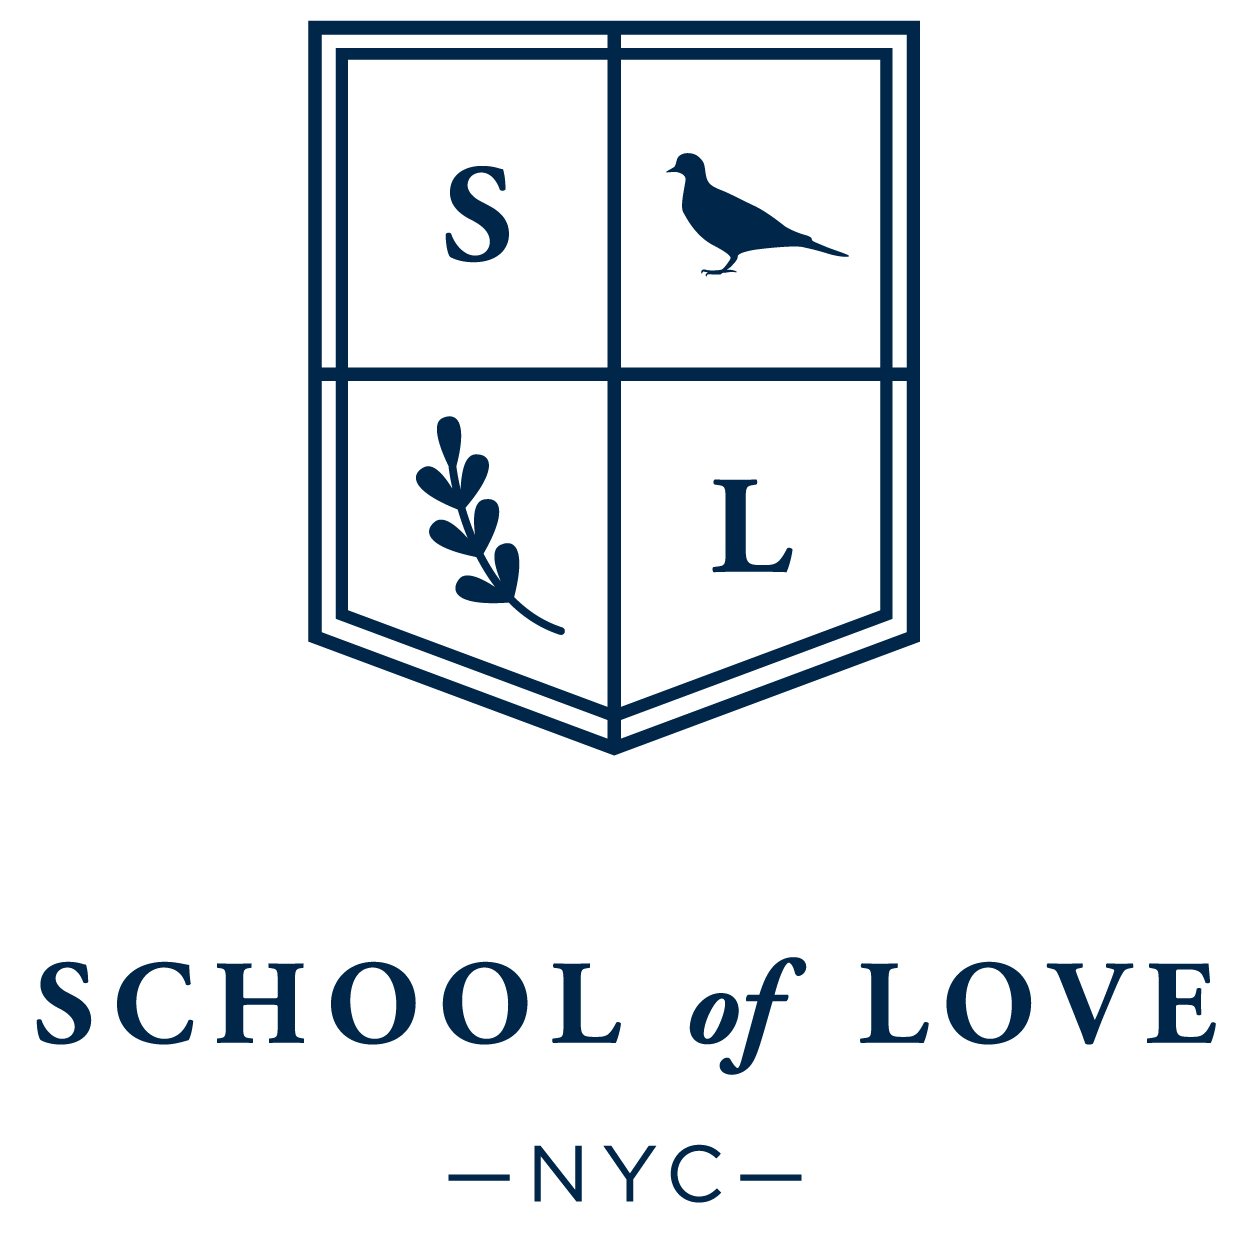 School of Love NYC